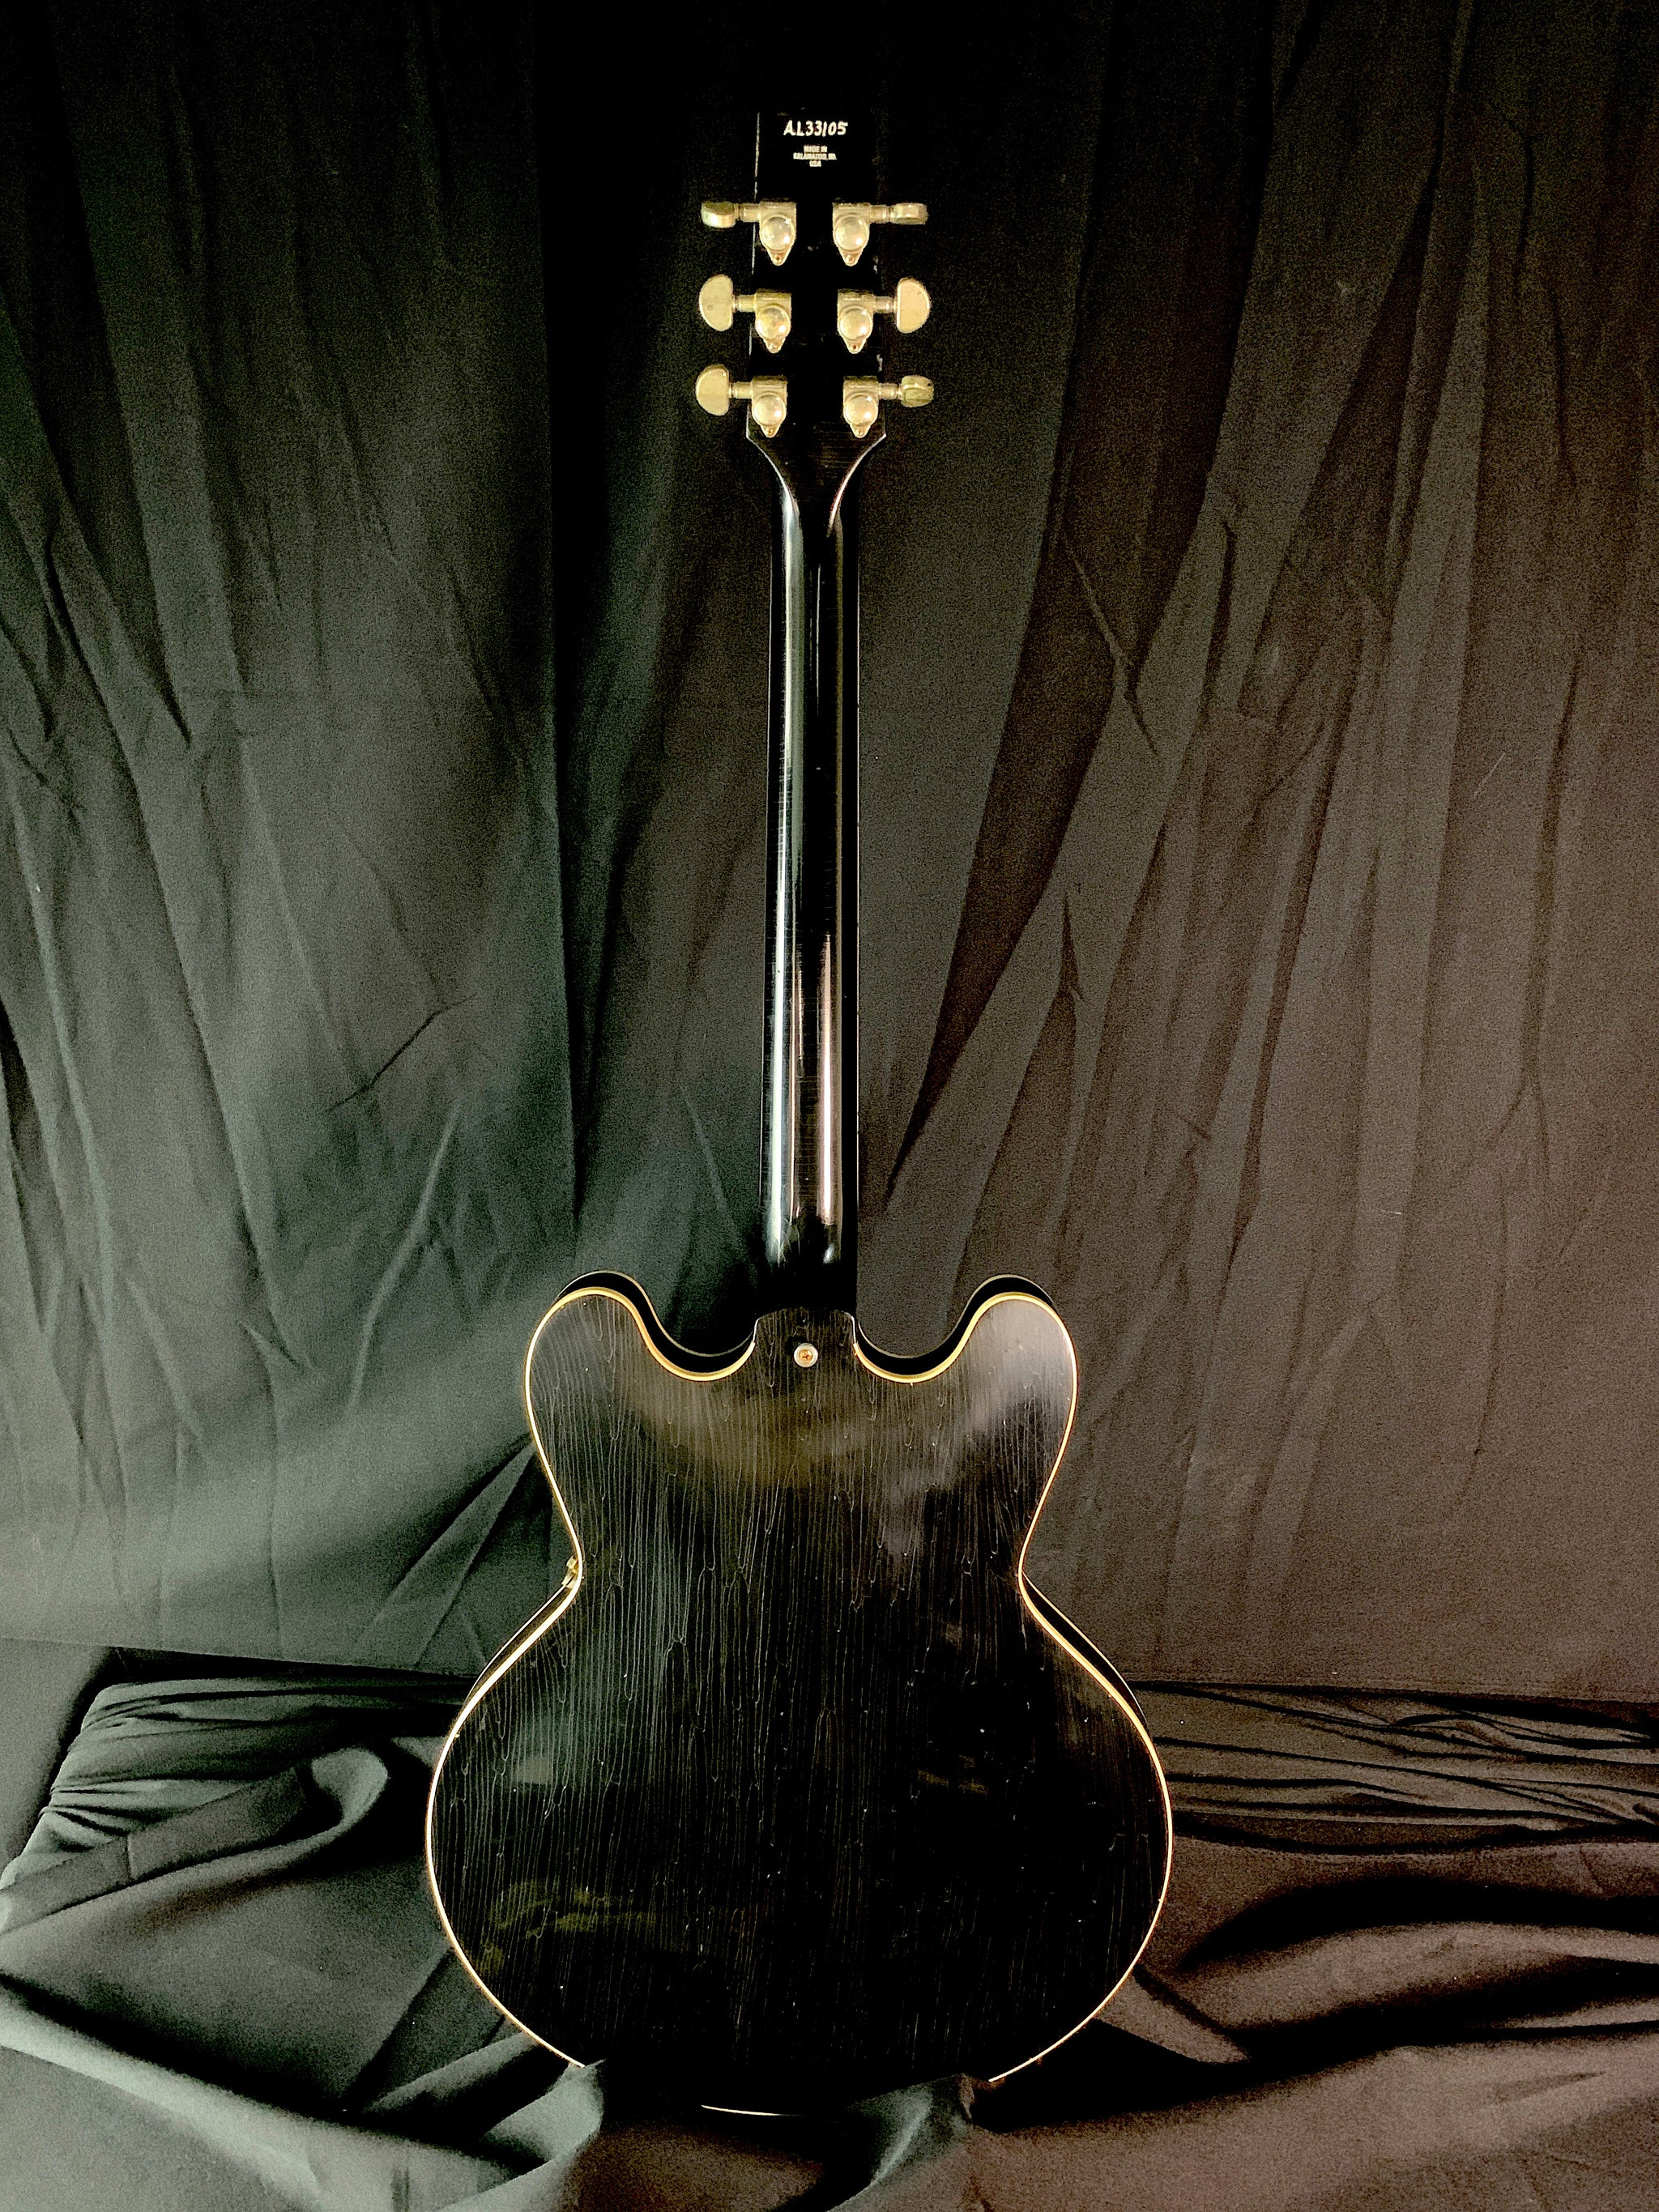 2021 H535 Artisan Aged Collection Ebony Finish